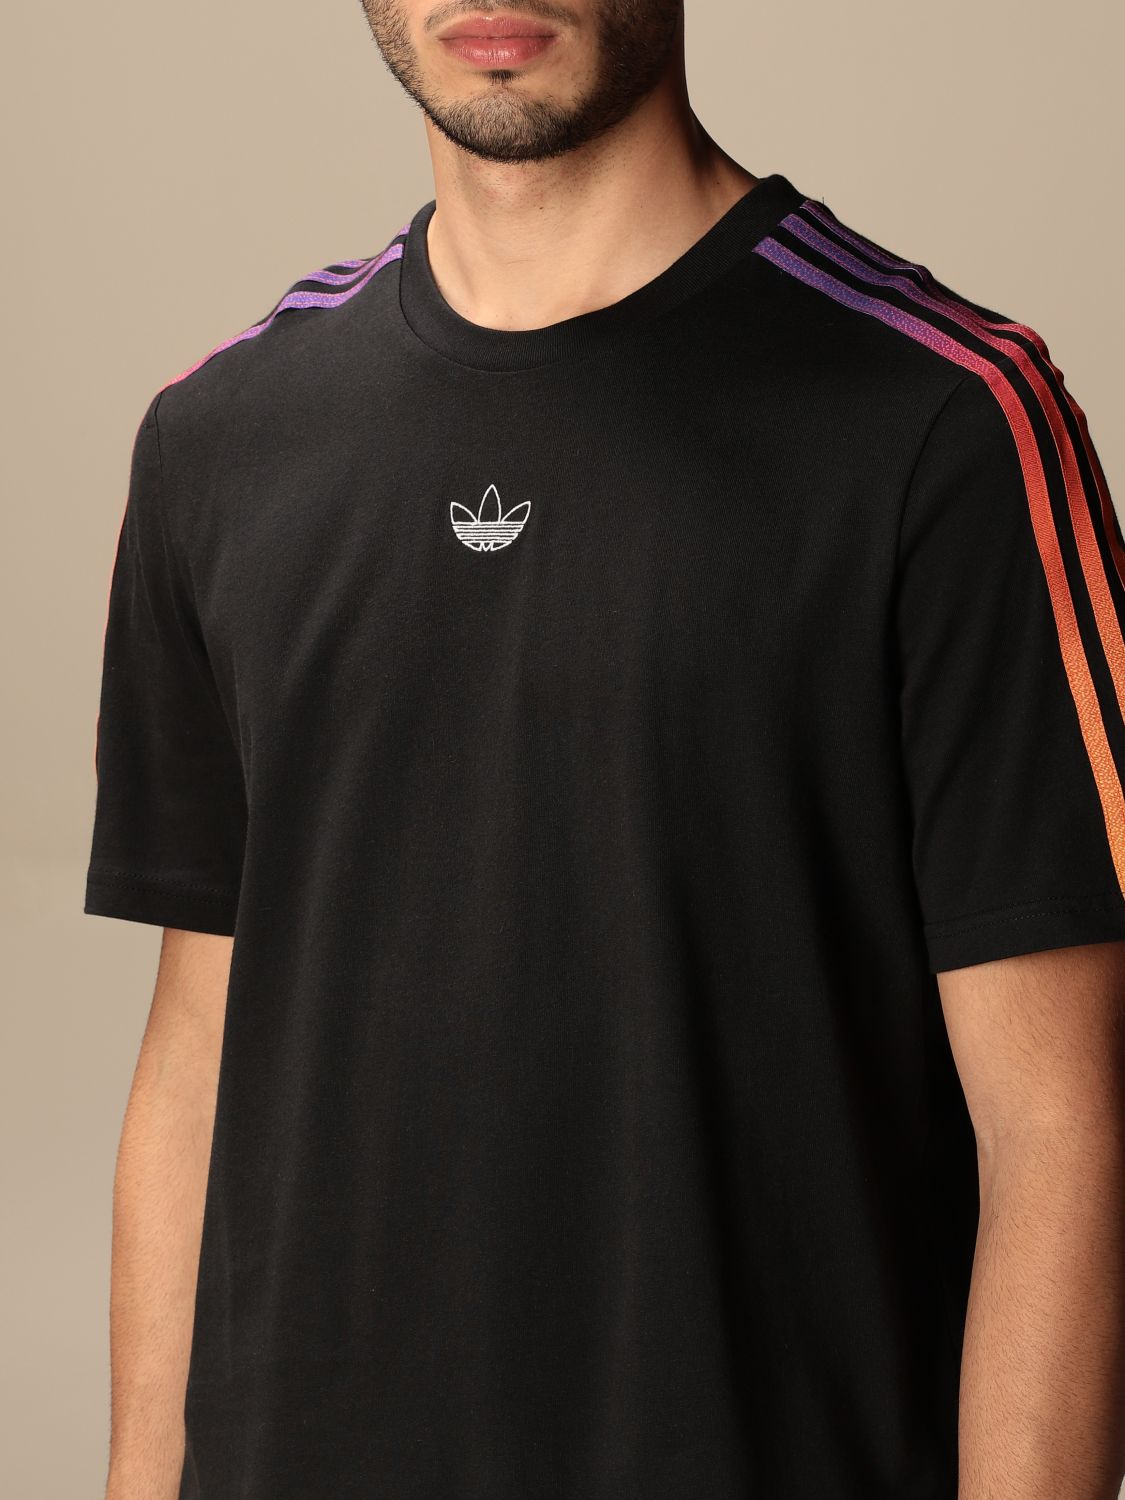 T-shirt Adidas Originals: T-shirt men Adidas Originals black 3